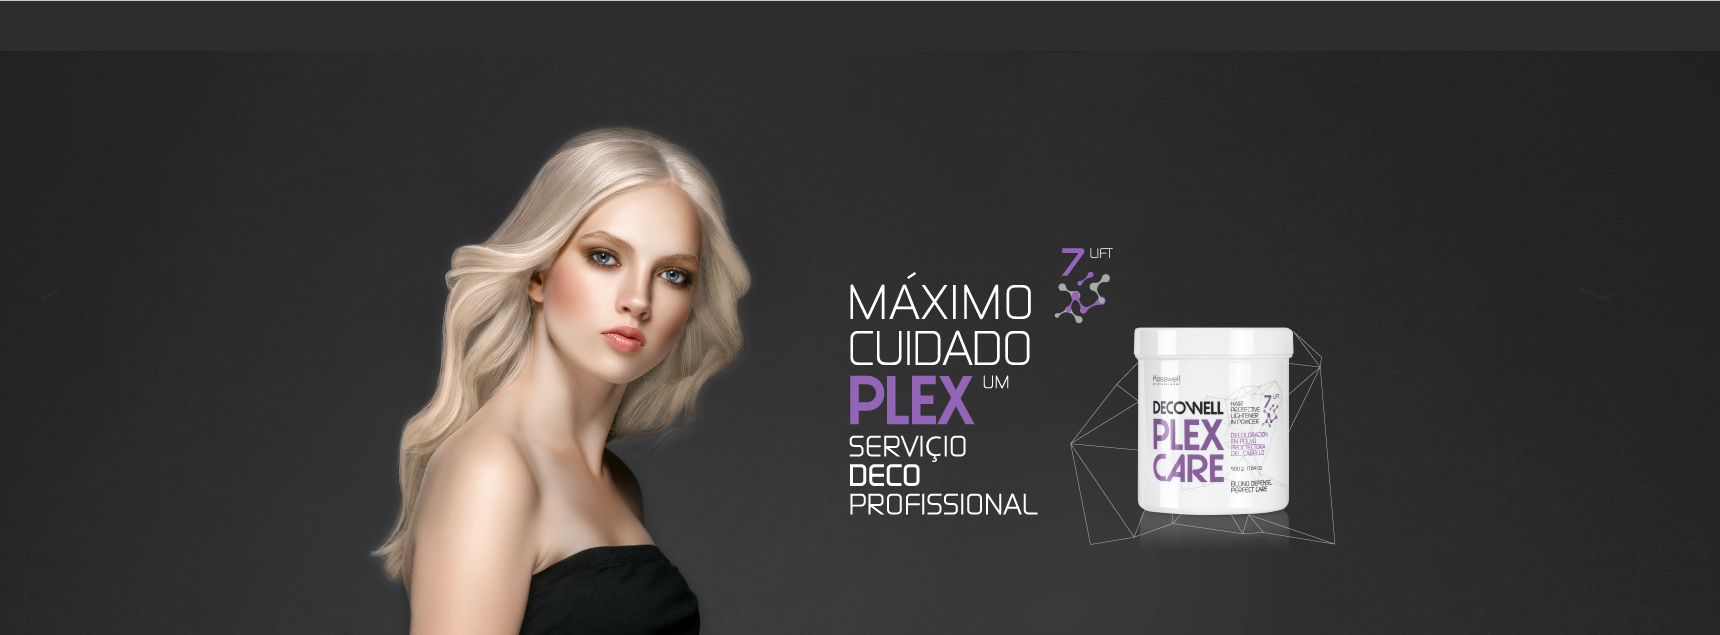 DECOWEL PLEX CARE